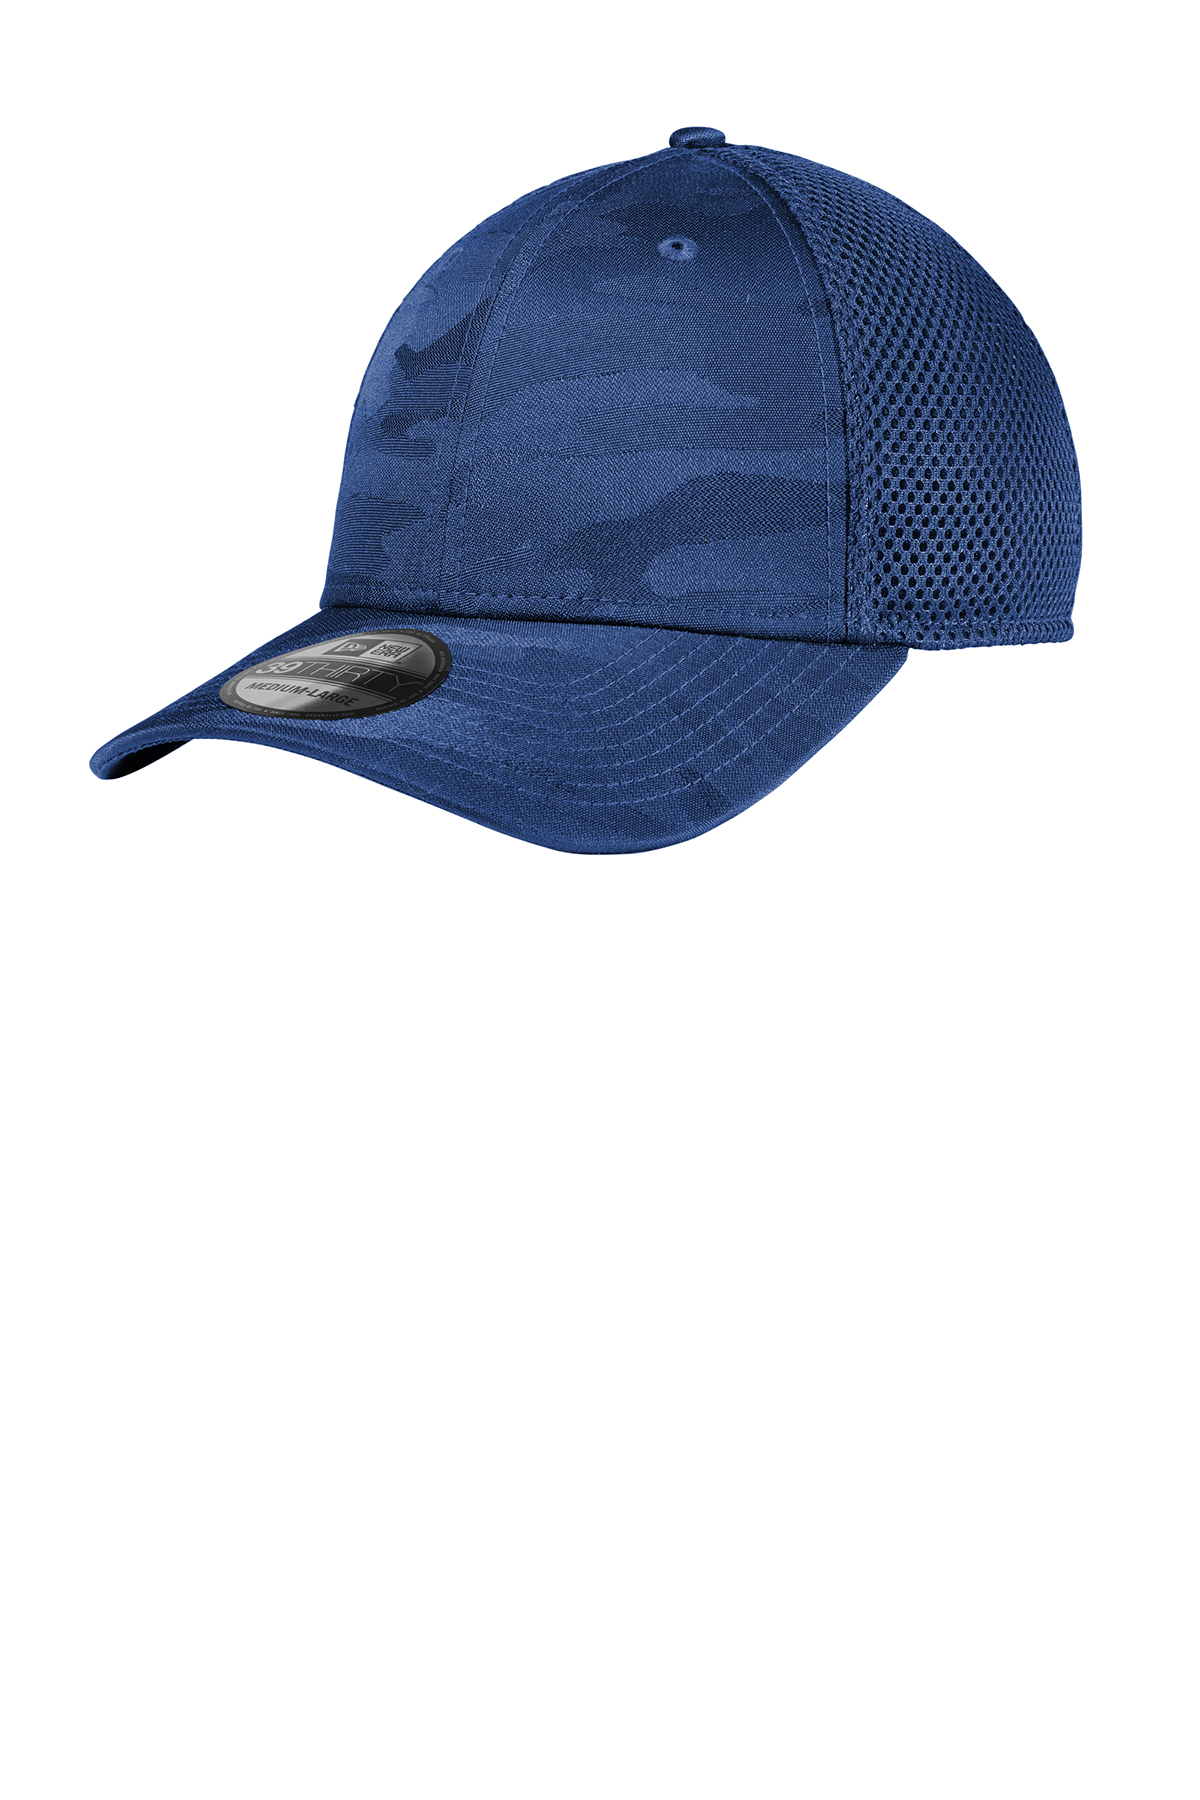 New Era NE1091 - Tonal Camo Stretch Tech Mesh Cap